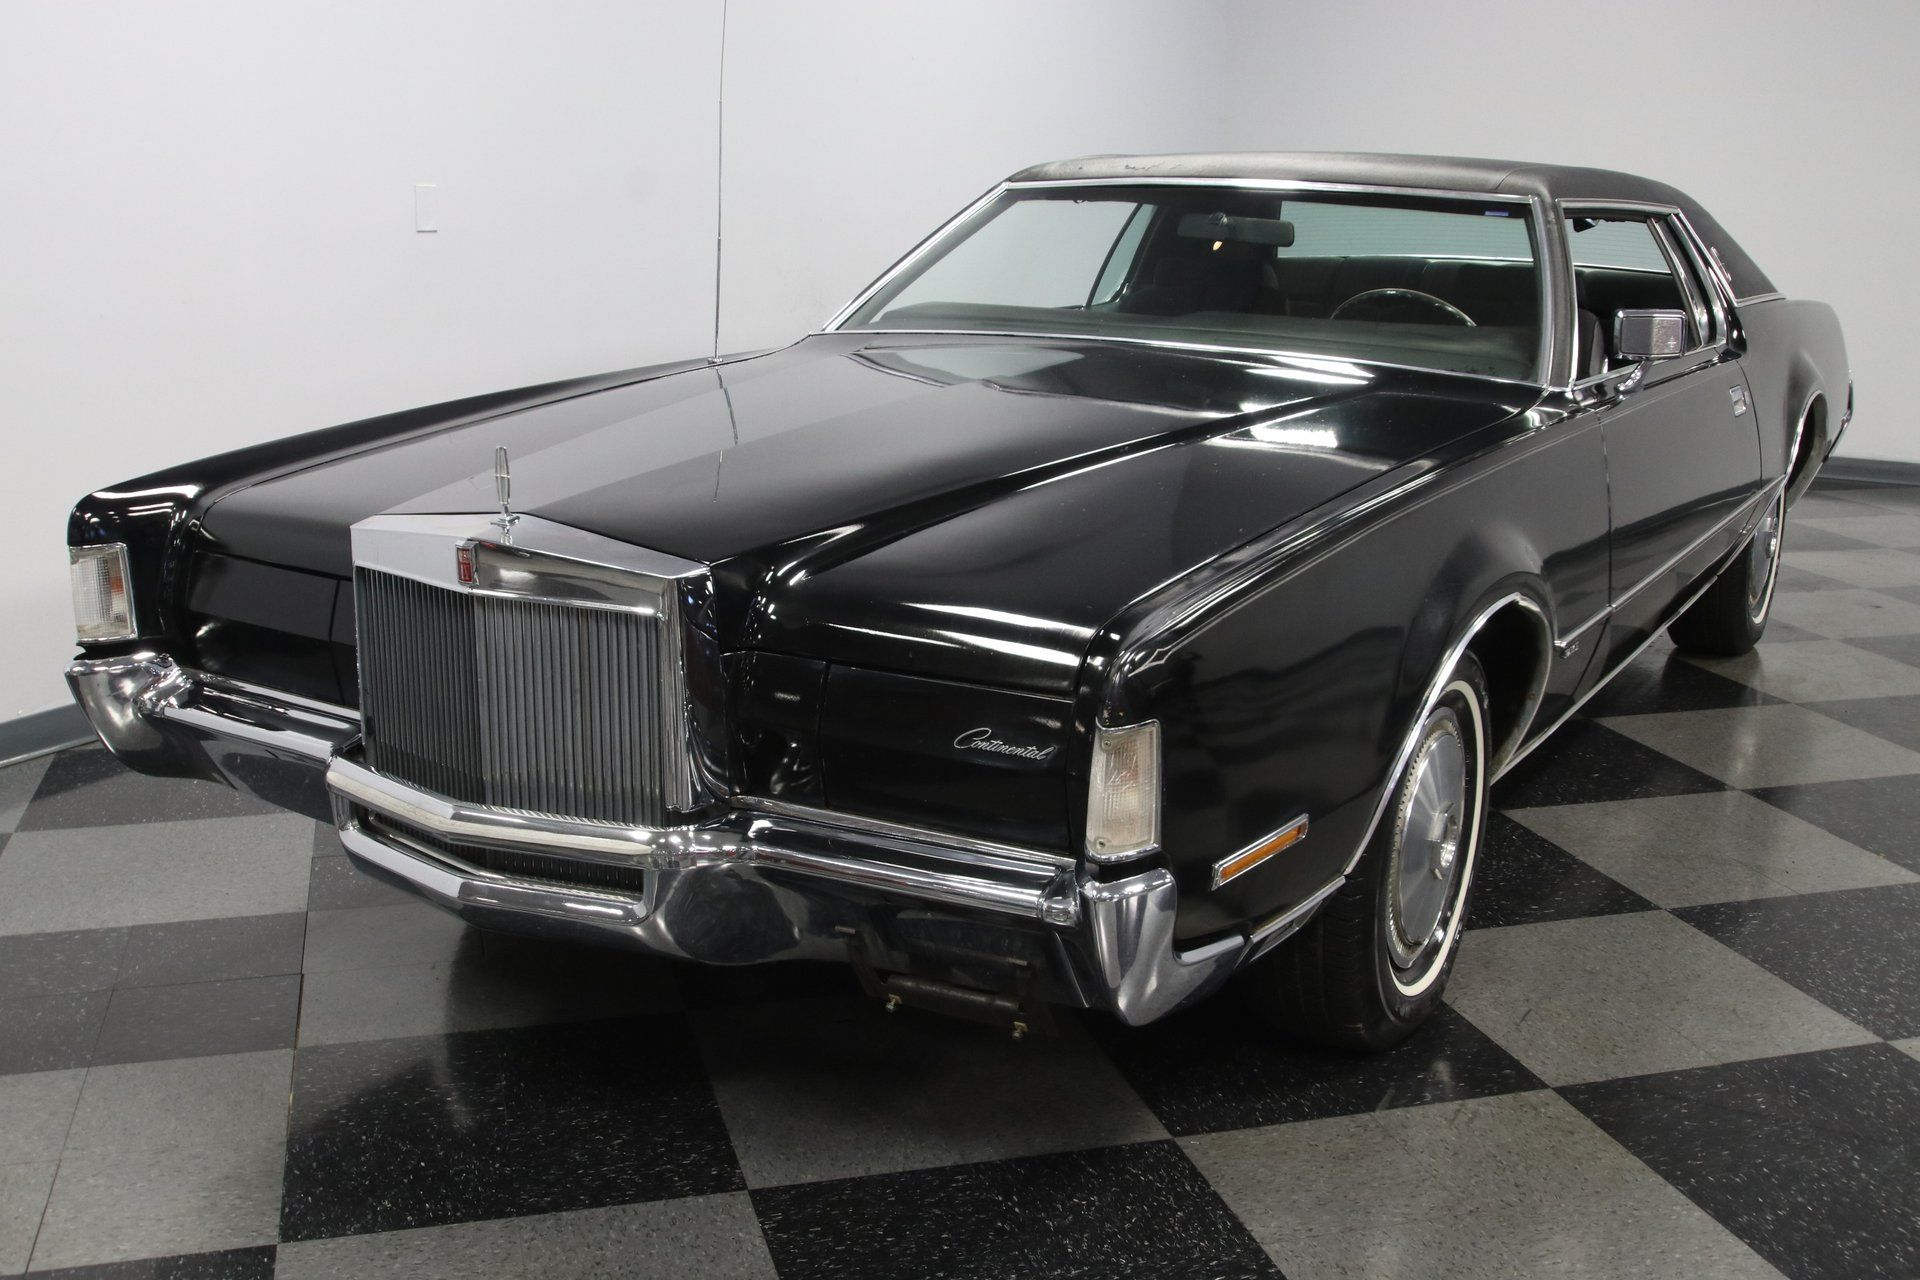 1972 Lincoln Continental Mark Iv Lincoln Continental Lincoln Cars Classic Cars